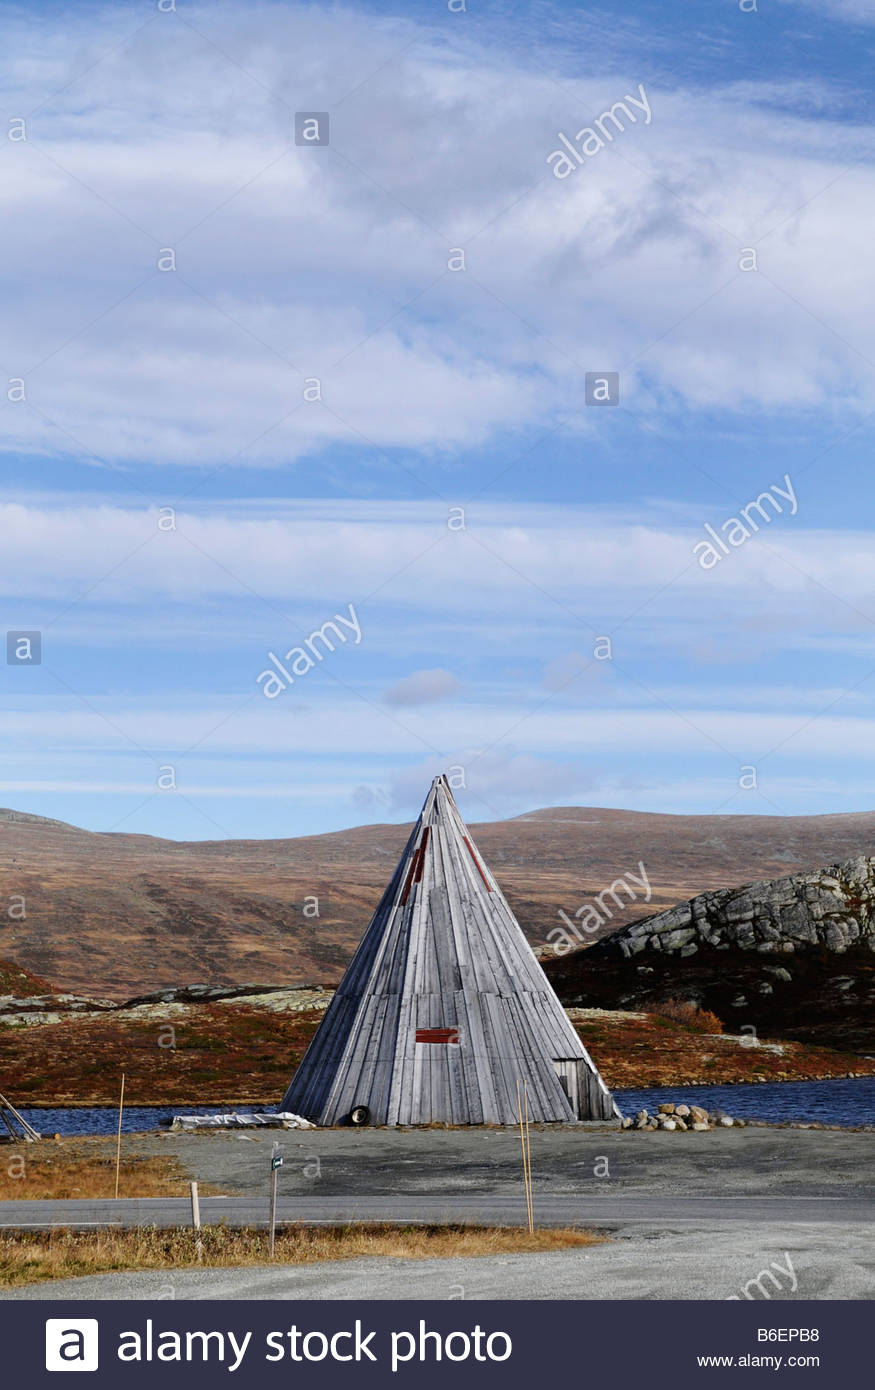 Lap cot on the mountain - Stock Image